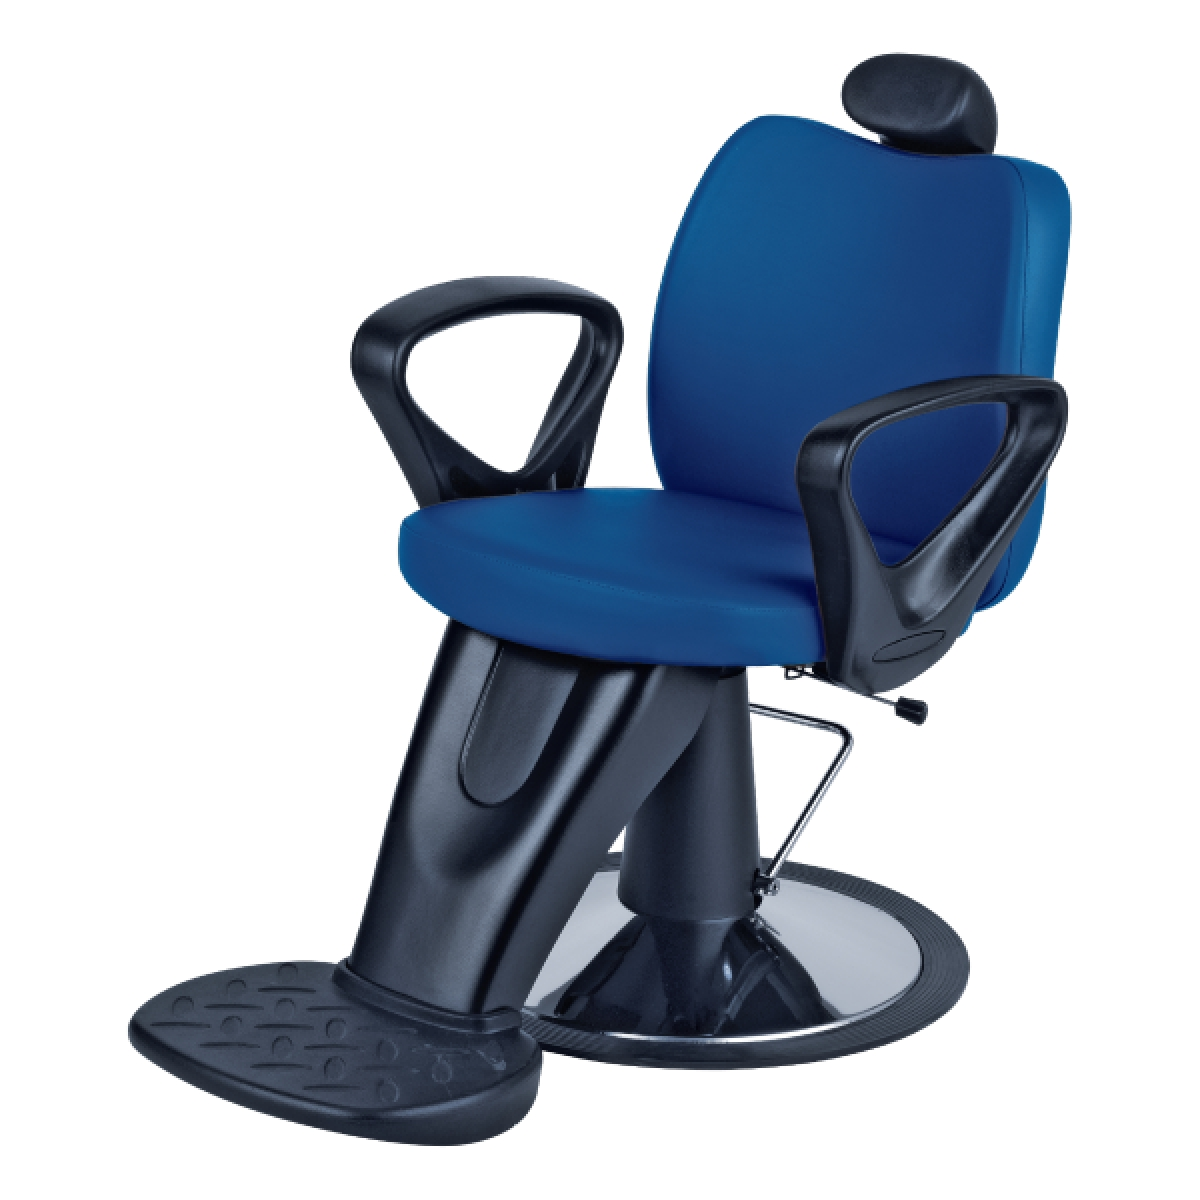 Ceriotti Royal Barber Chairs - Regal Hair Salon Supply